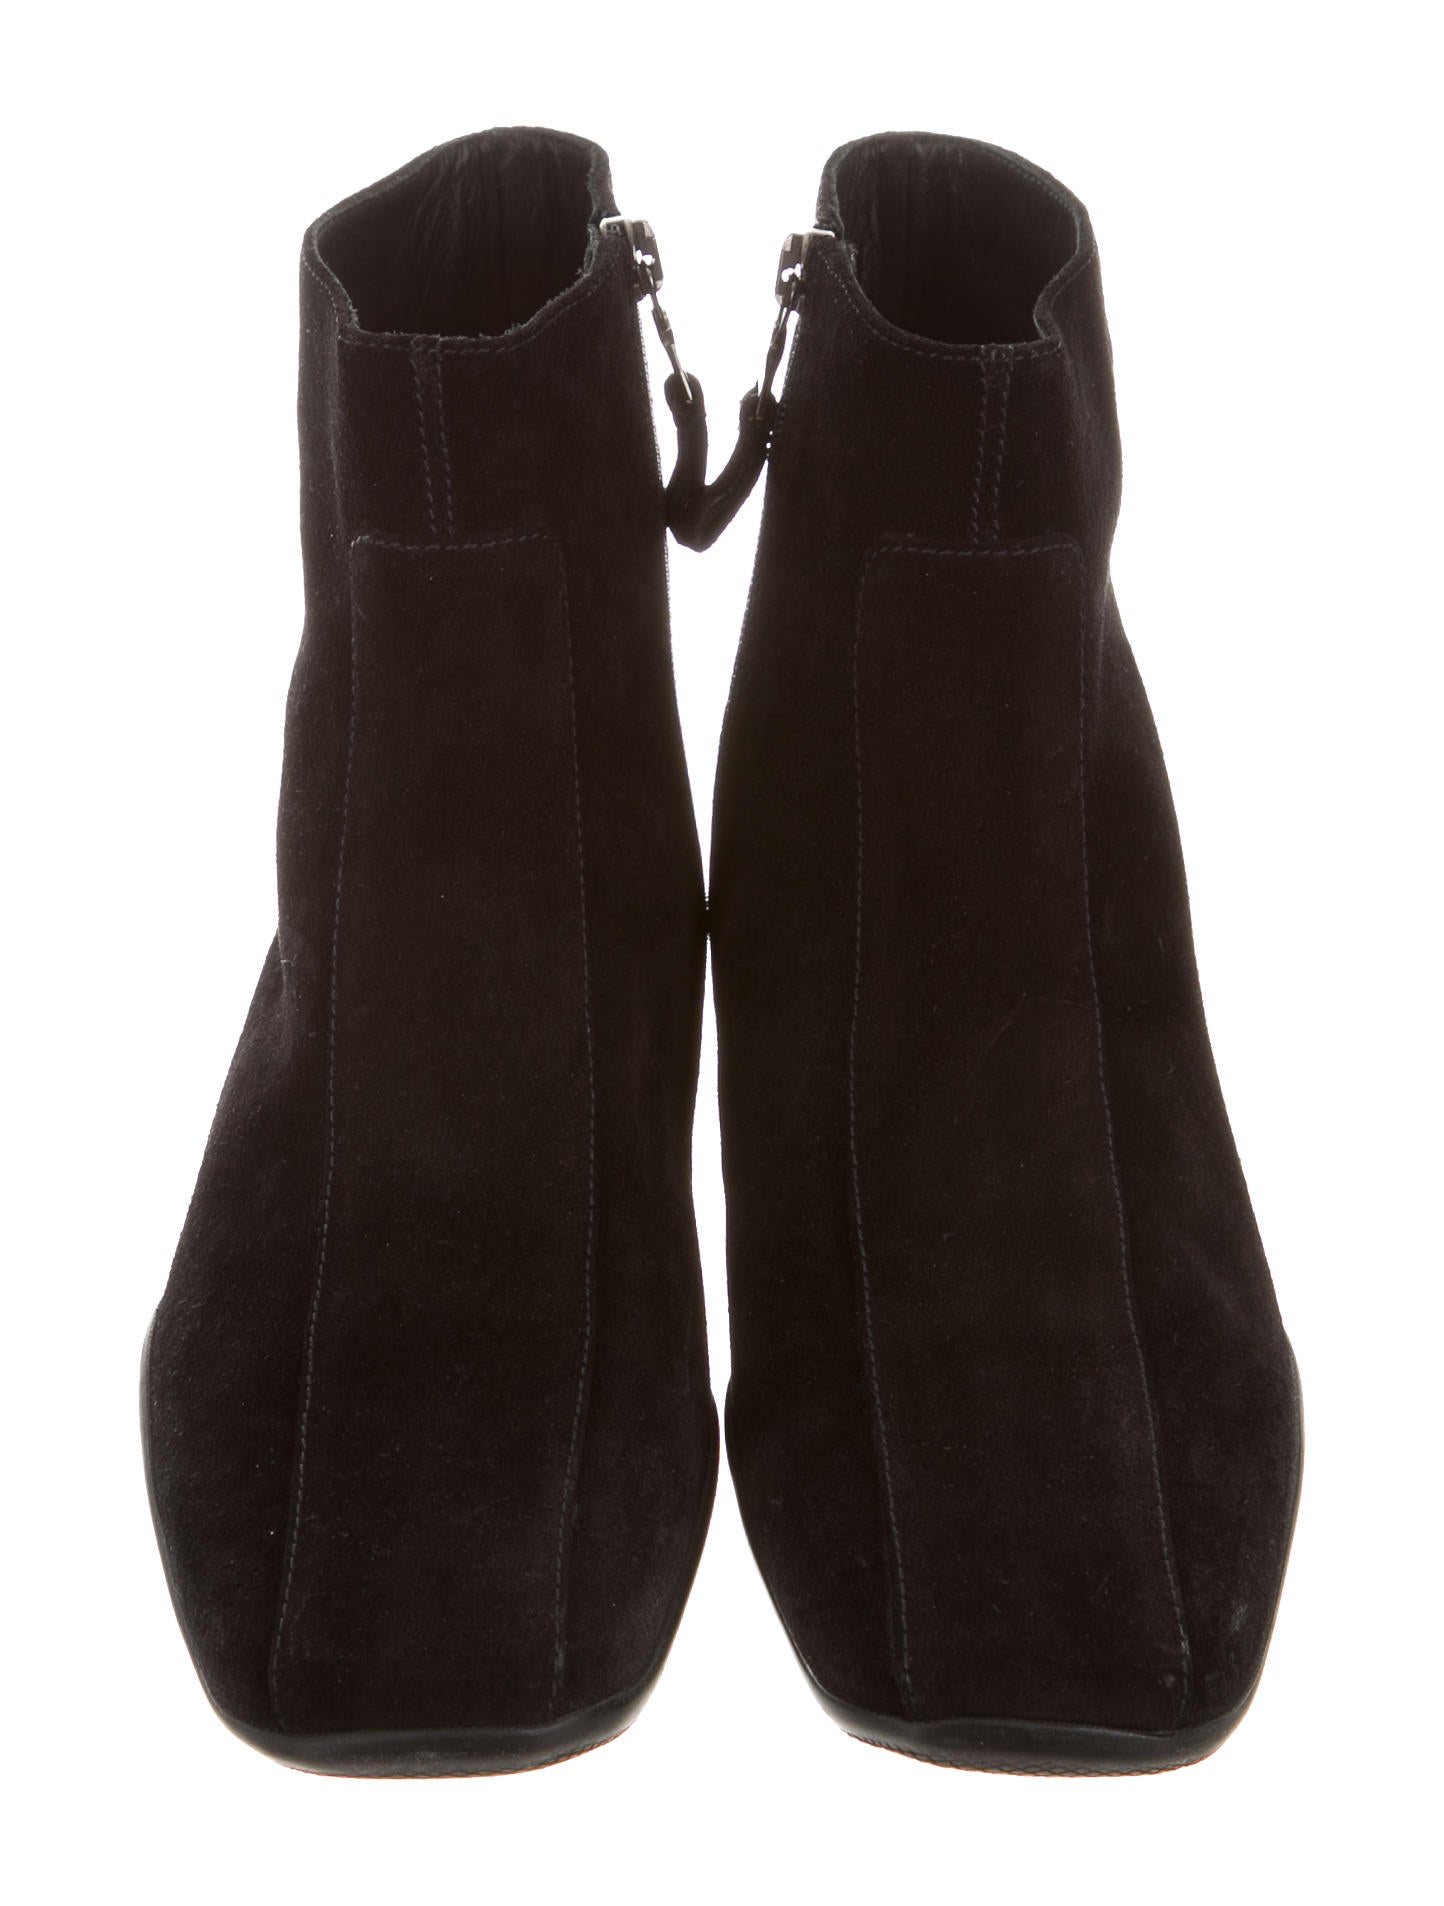 prada sport suede ankle boots shoes wpr39134 the